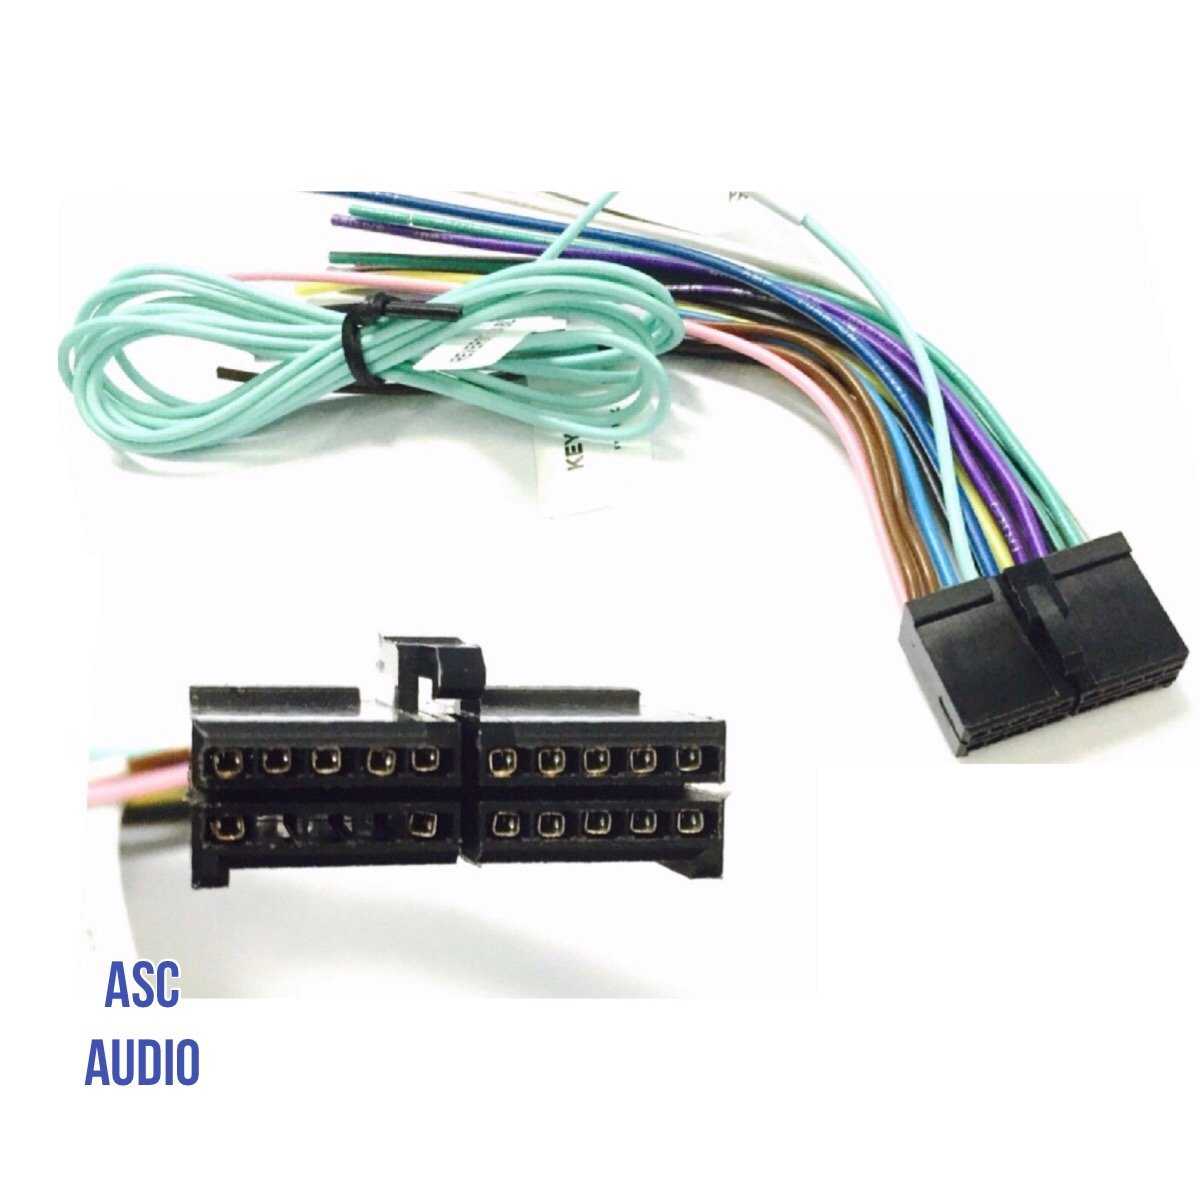 Wire Harness Pin Wiring Library About Car Stereo Cd Player Adapter For Sony Jvc Asc Audio Radio Plug Select Boss 20 Radios Dvd Nav